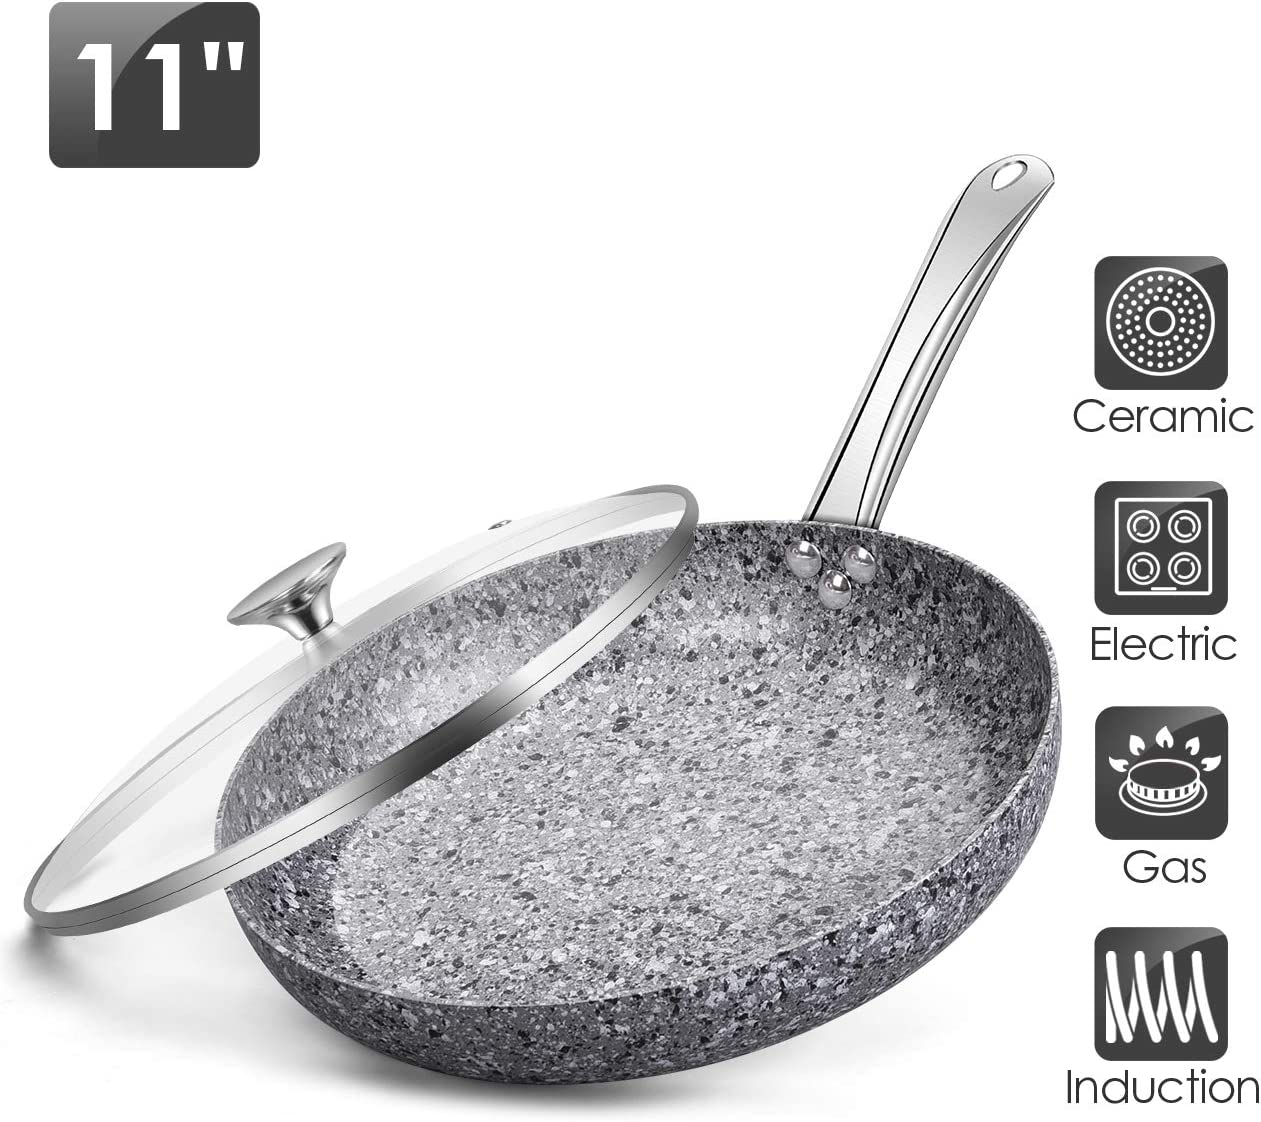 """11"""" Frying Pans Nonstick with Lids - Nonstick Skillet, Stir Fry Pans with APEO & PFOA-Free Stone Earth Ceramic Coating from Germany, Granite Pan with Stainless Steel Handle"""